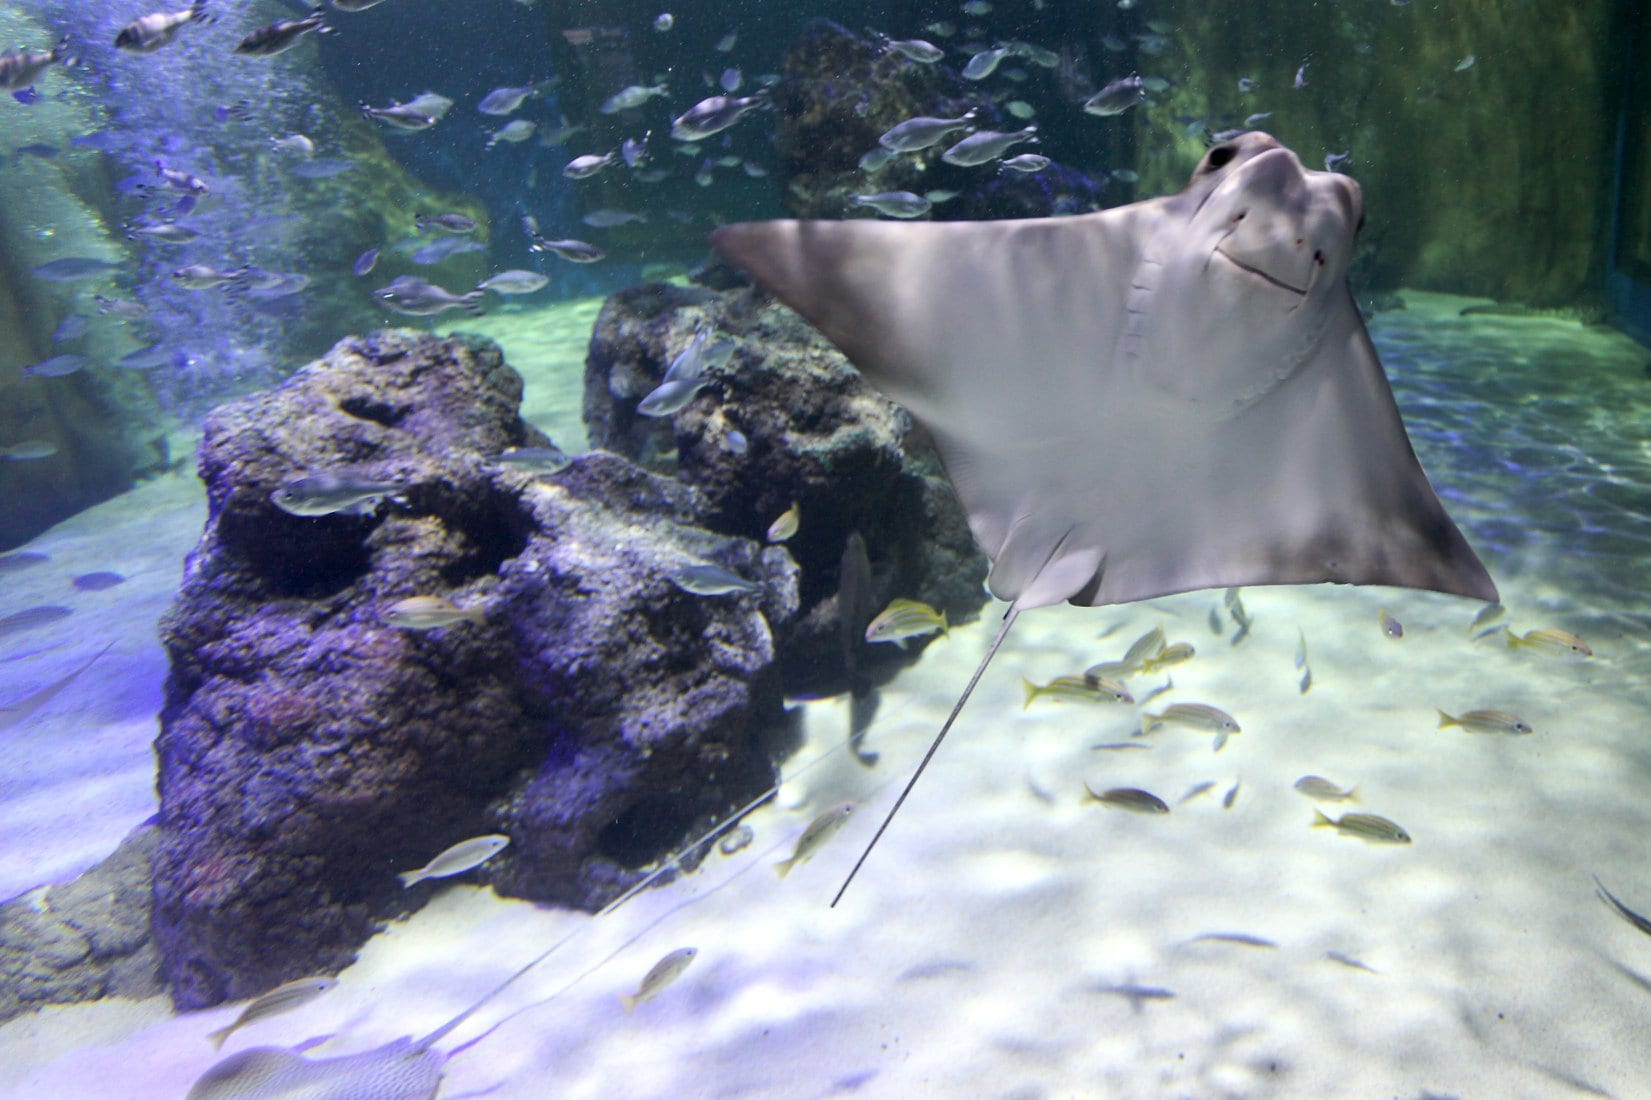 Rays at SEA LIFE Blackpool